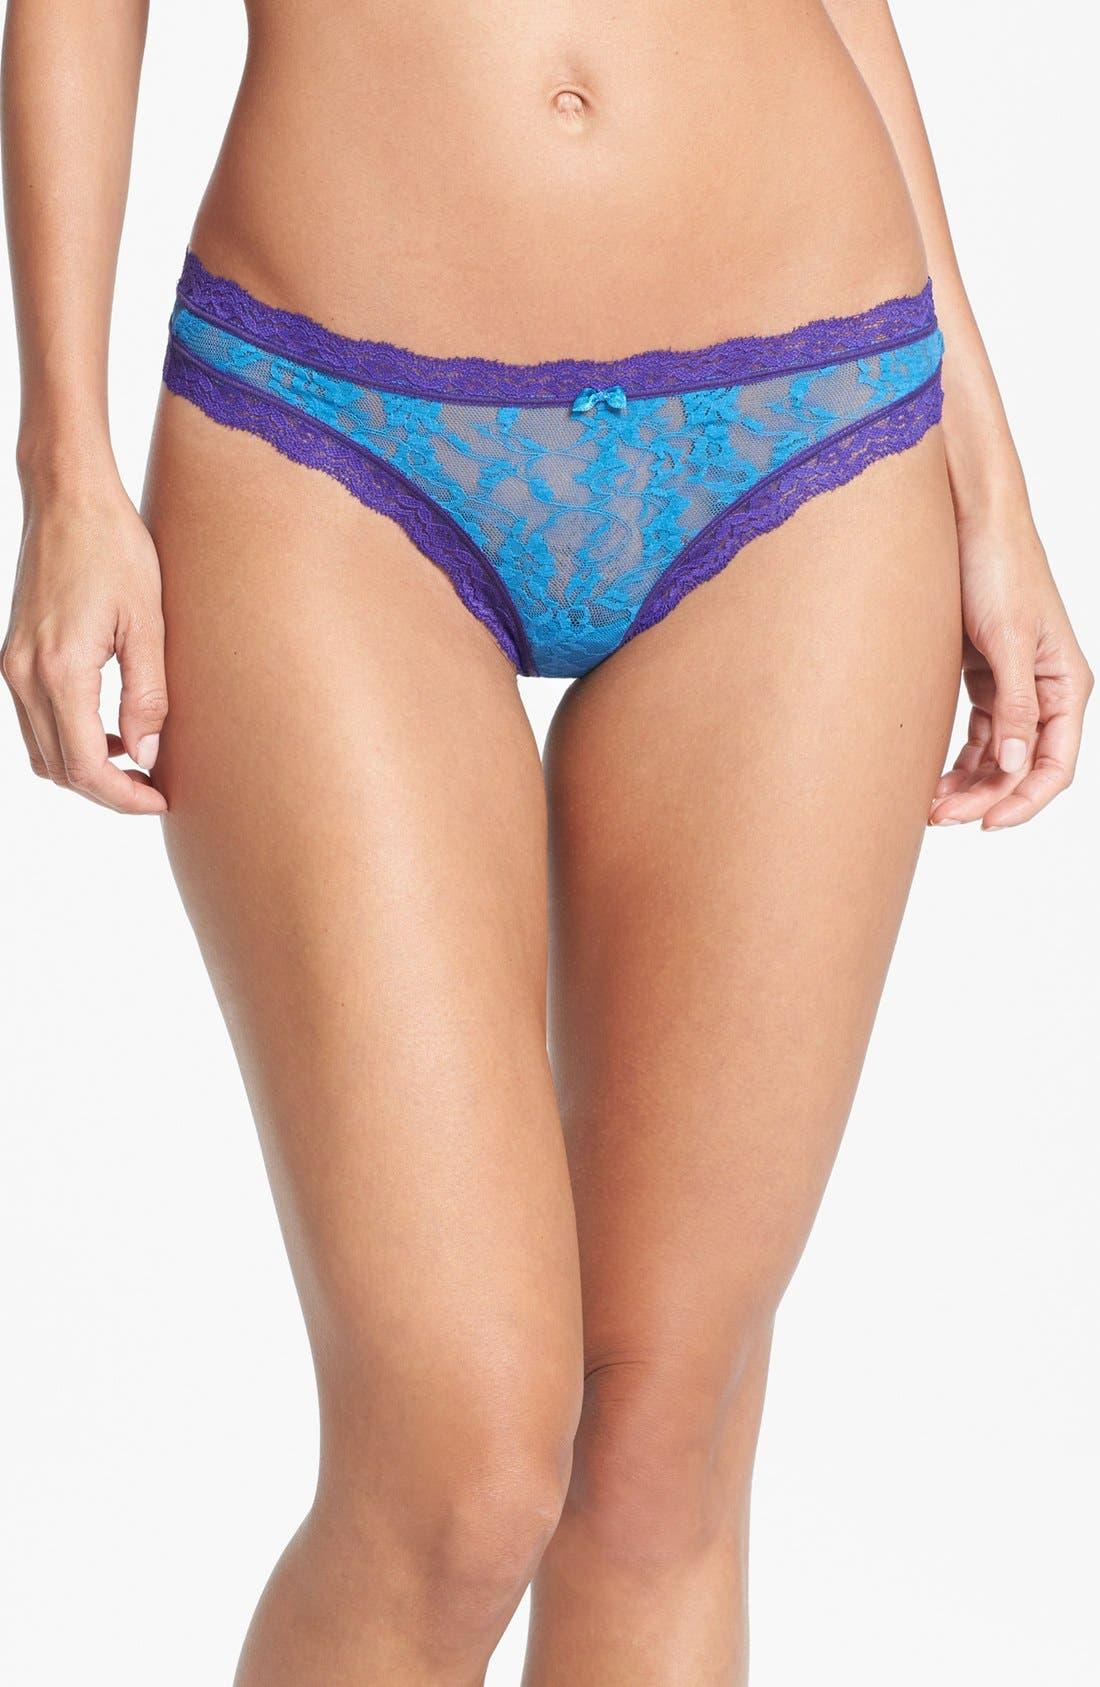 Alternate Image 1 Selected - DKNY 'Signature Lace' Thong